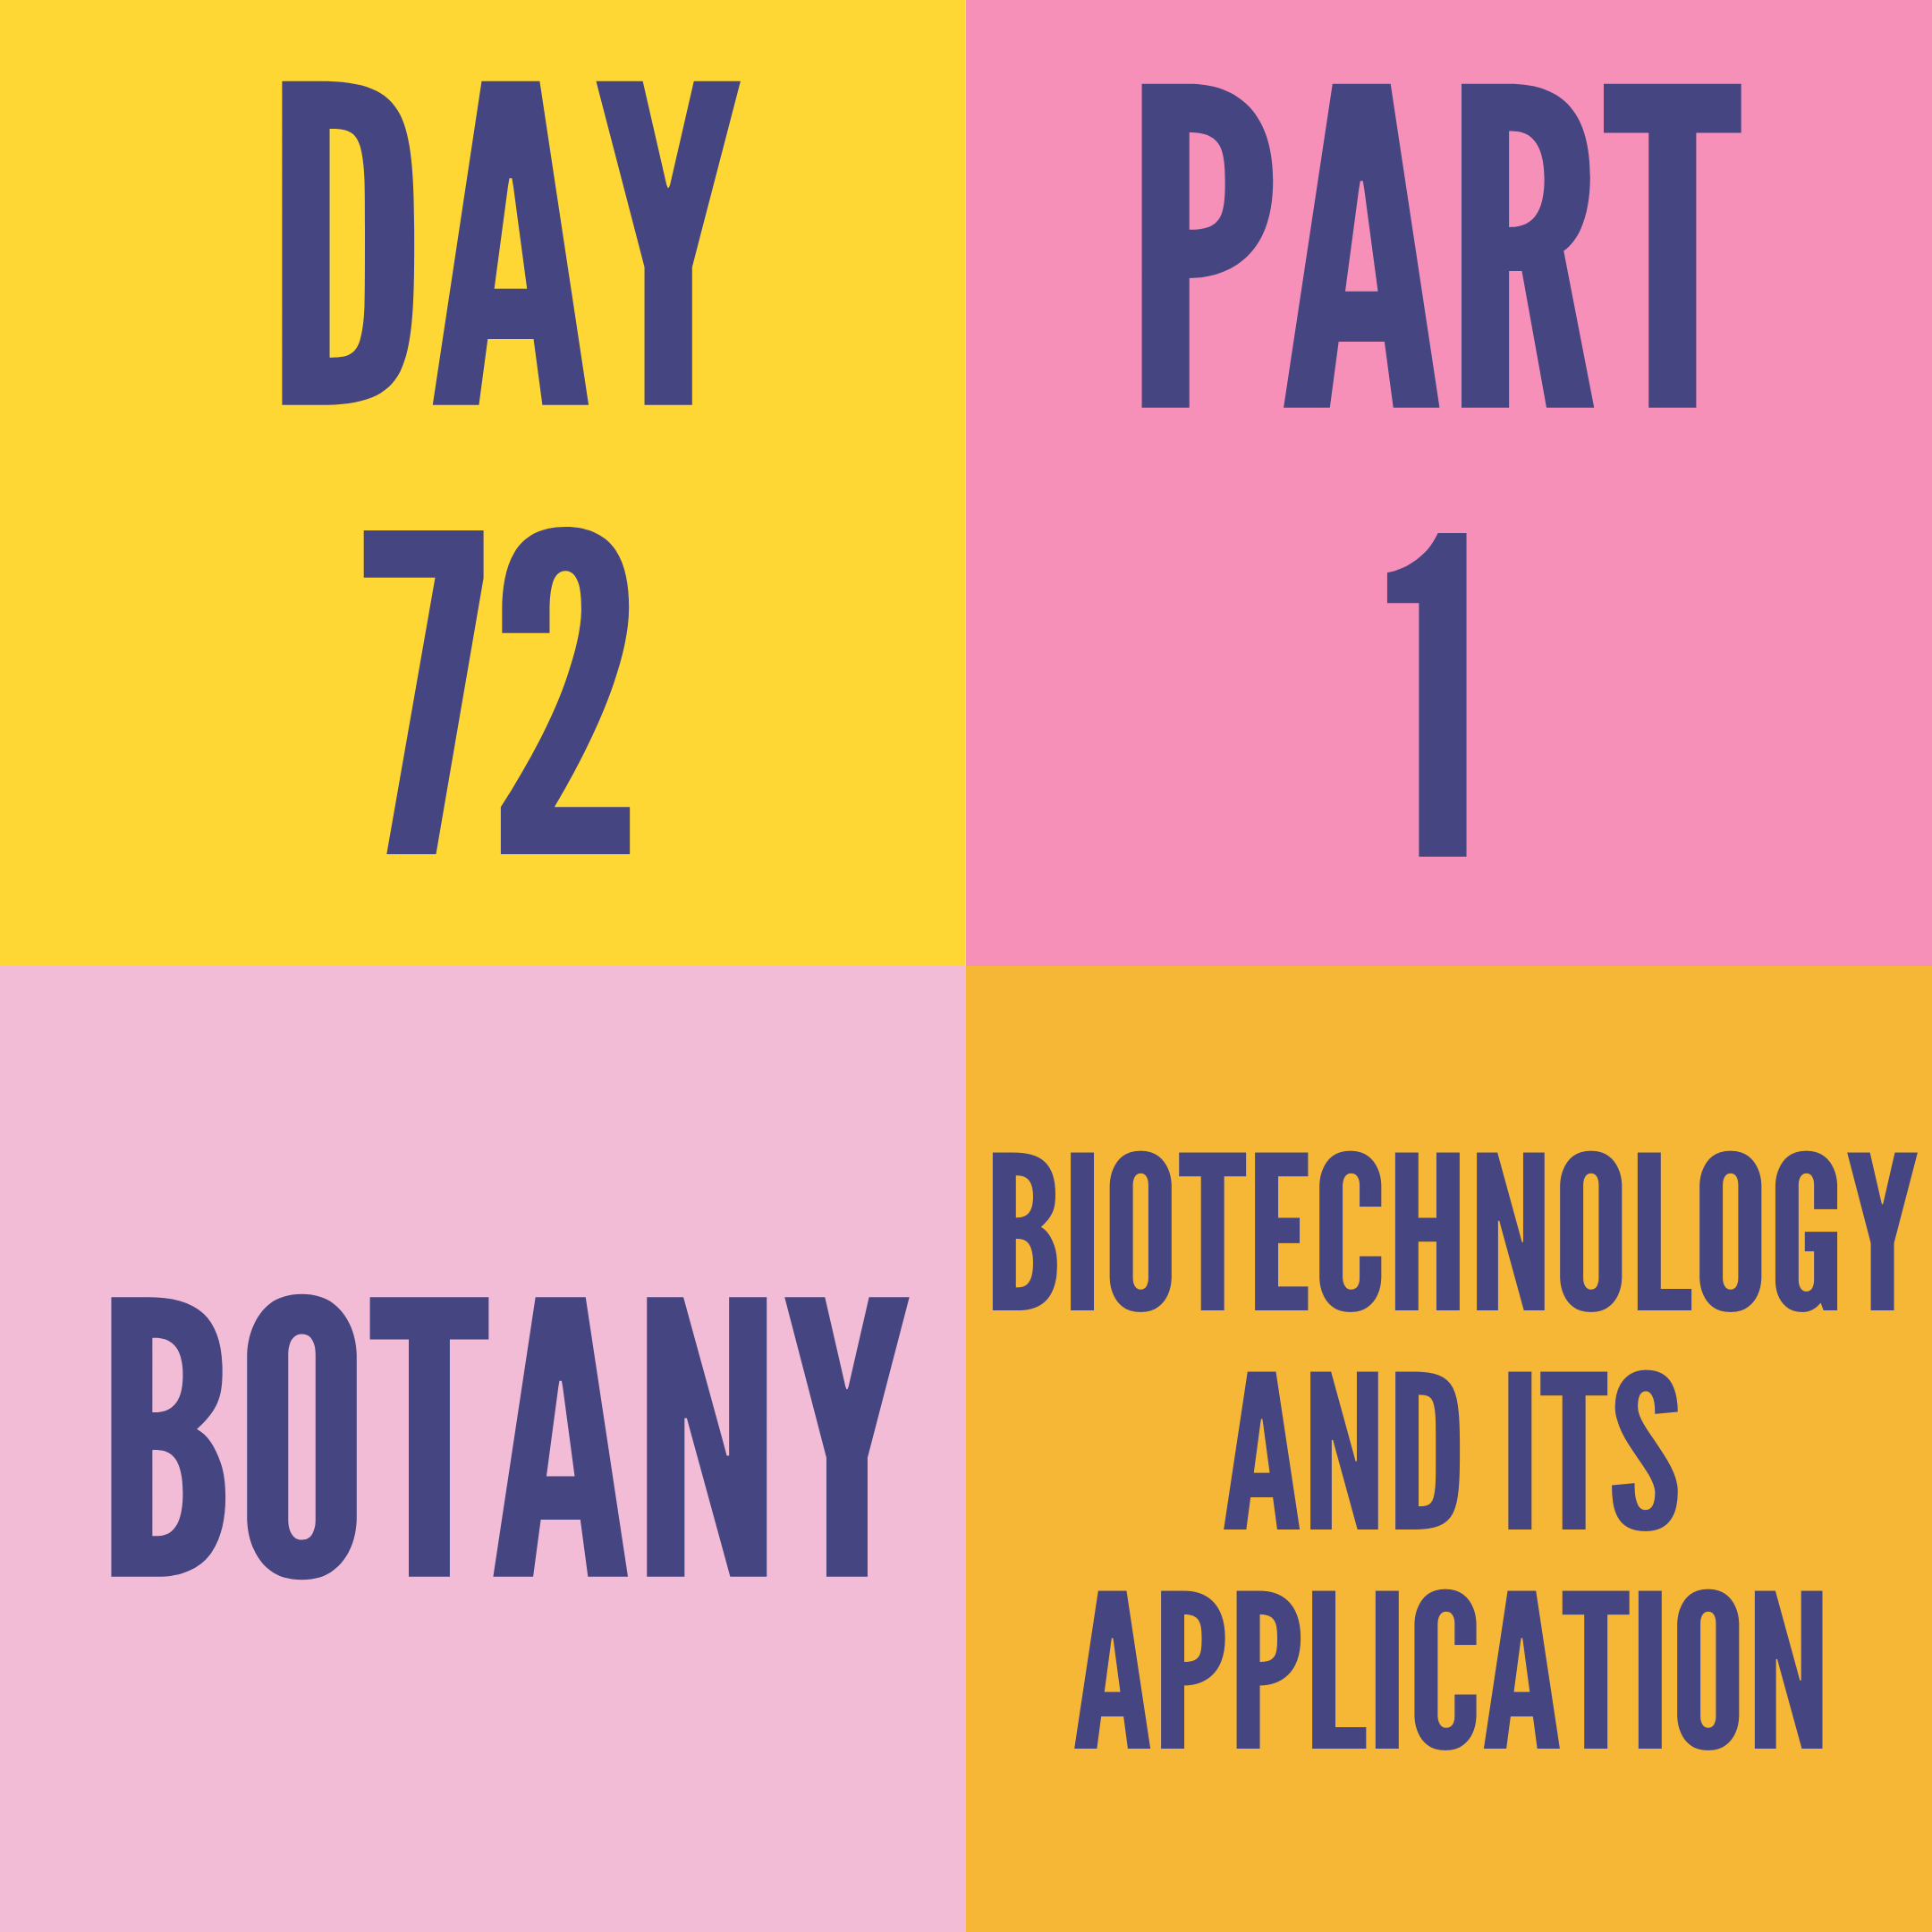 DAY-72 PART-1 BIOTECHNOLOGY AND ITS APPLICATION